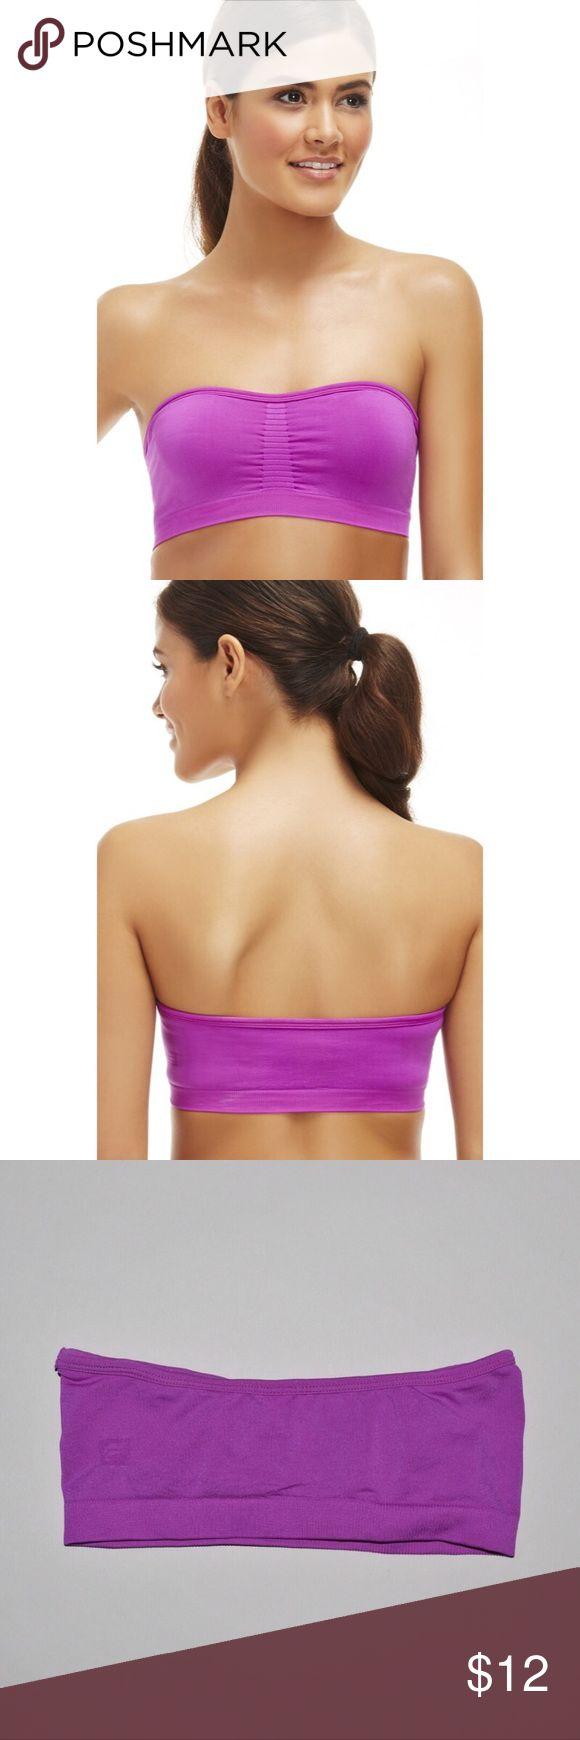 Fabletics Sevan Seamless Bandeau Top Brand: Fabletics Item name: Sevan Seamless Bandeau Top Color: Purple Condition: Brand new without tags.  However, the size tags have been cut out.  Size: XS Fabletics Tops